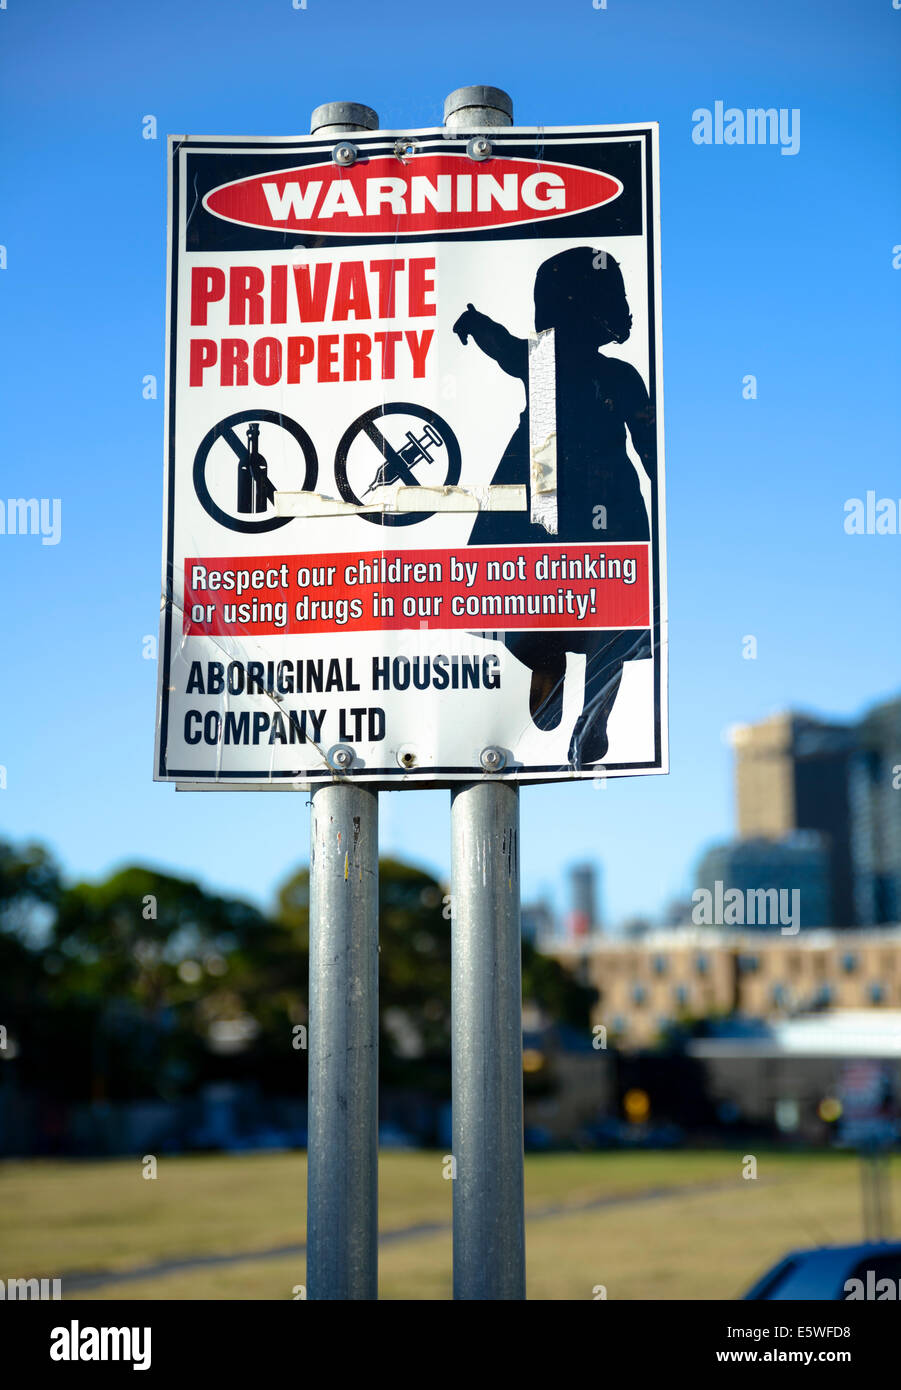 Sign encouraging people not to abuse drugs or alcohol in order to protect children and the community. - Stock Image